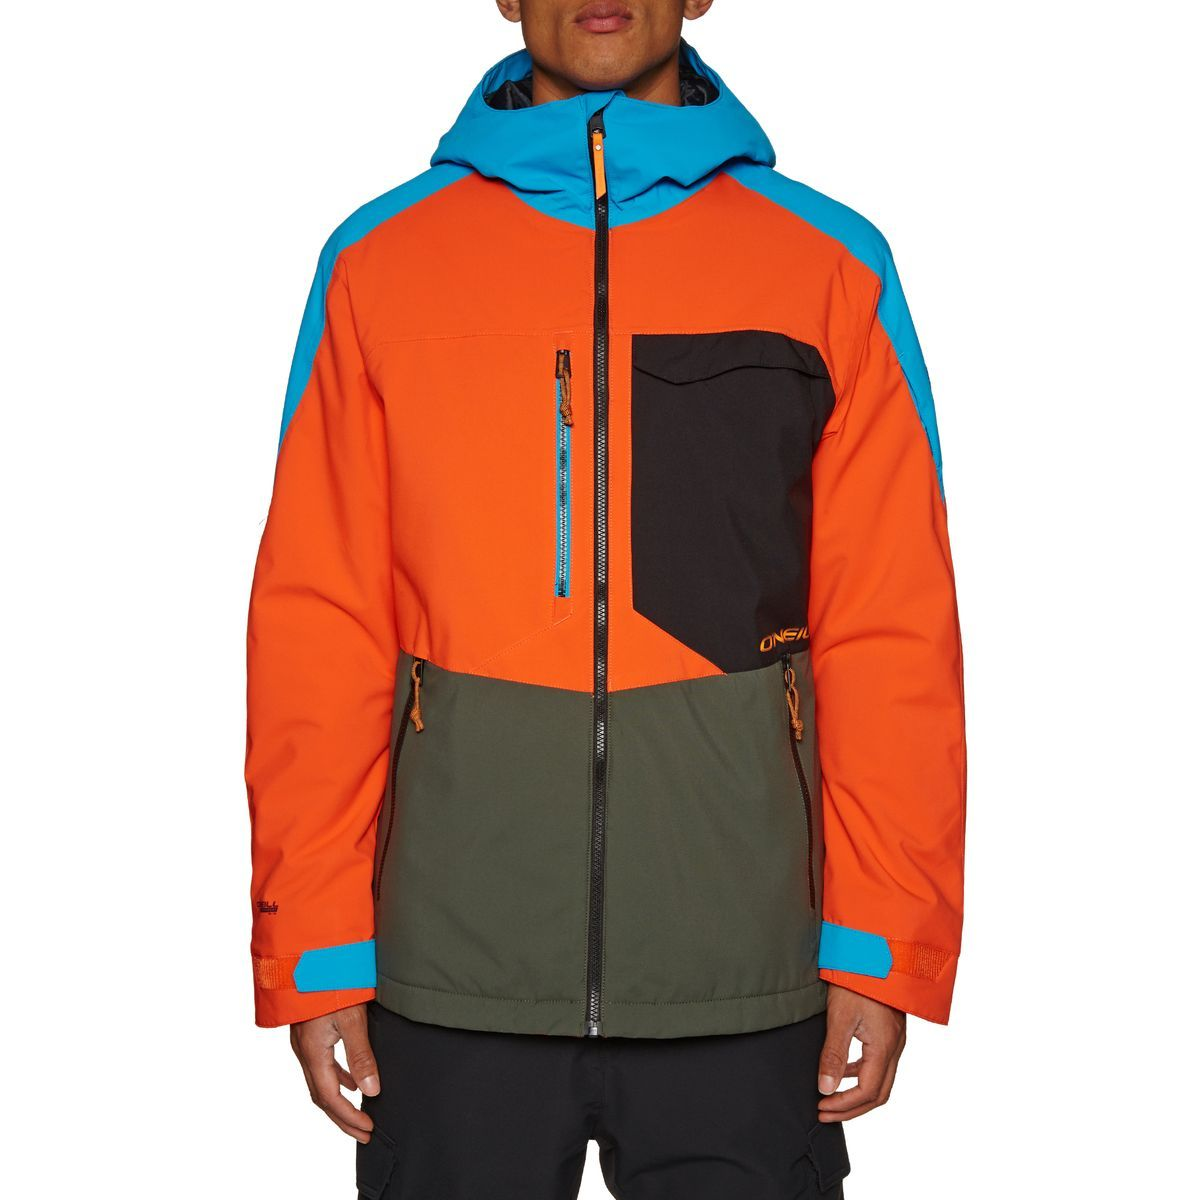 3e26e5fc97 Buy O'Neill Exile Snow Jacket Bright Orange with great prices, Free  Delivery* & Free Returns at surfdome.com.